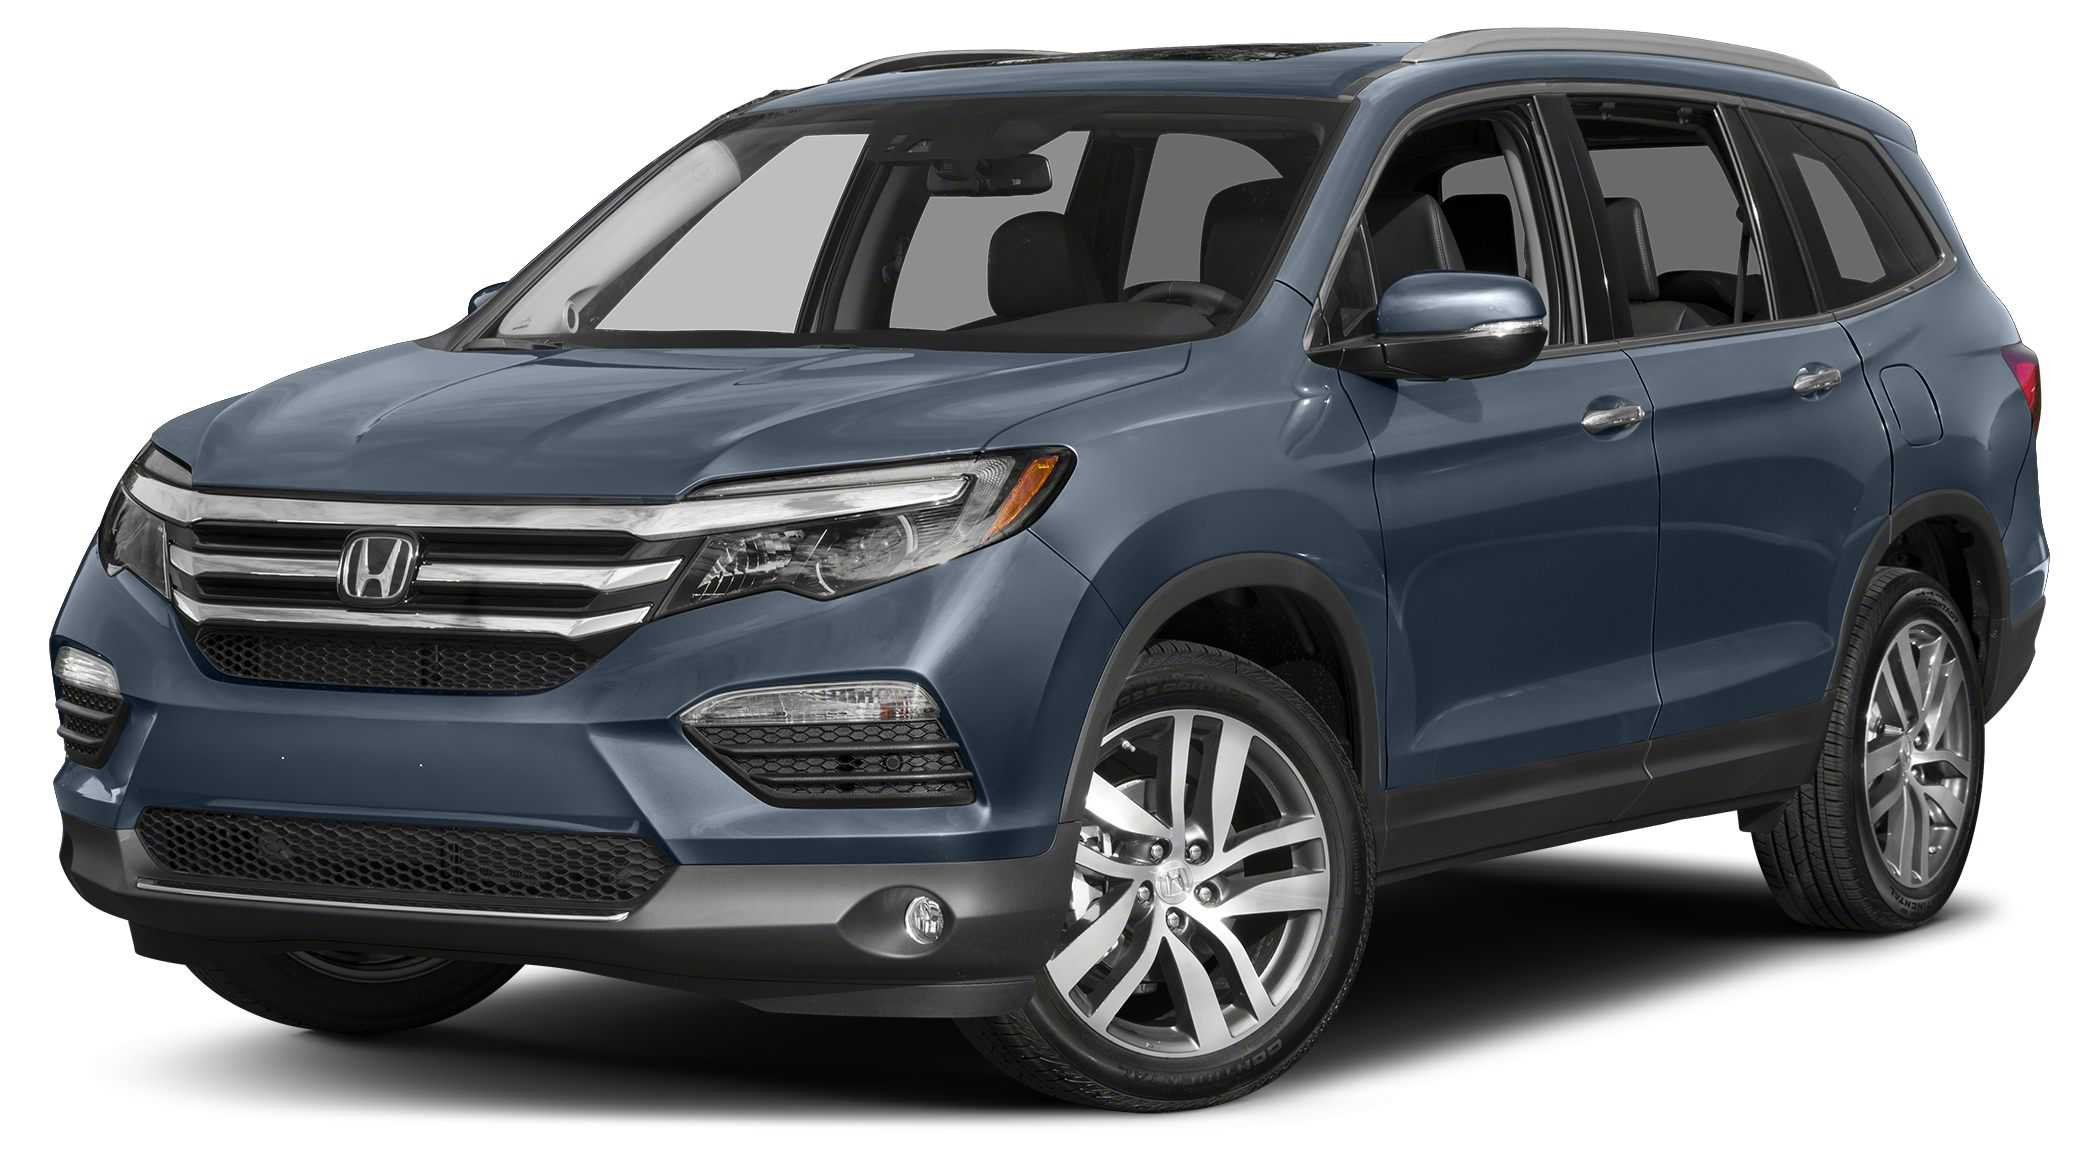 2017 honda pilot for sale in manchester nh for 2017 honda pilot gas mileage